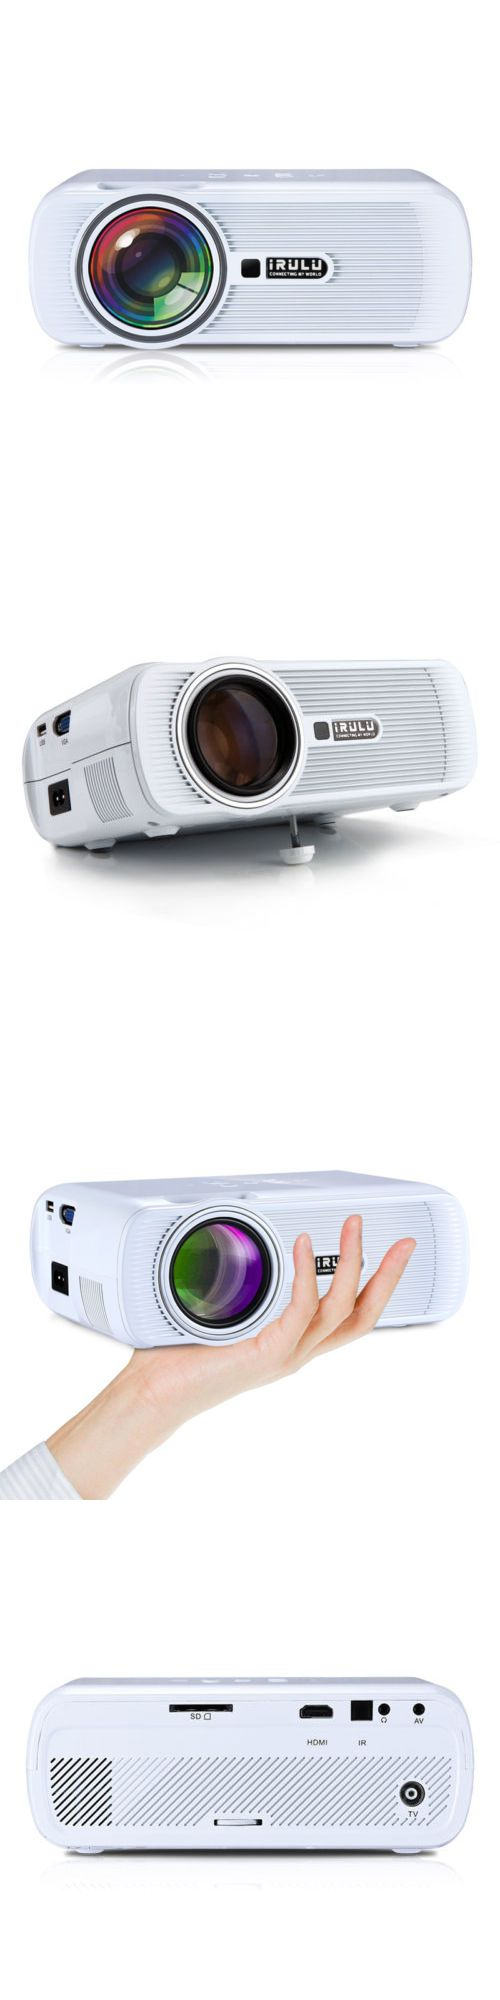 Home Theater Projectors: Irulu 3D Home Cinema Theater Led Projector 1080P Fhd Hdmi Av Usb Vga Pc Sd White -> BUY IT NOW ONLY: $60.29 on eBay!